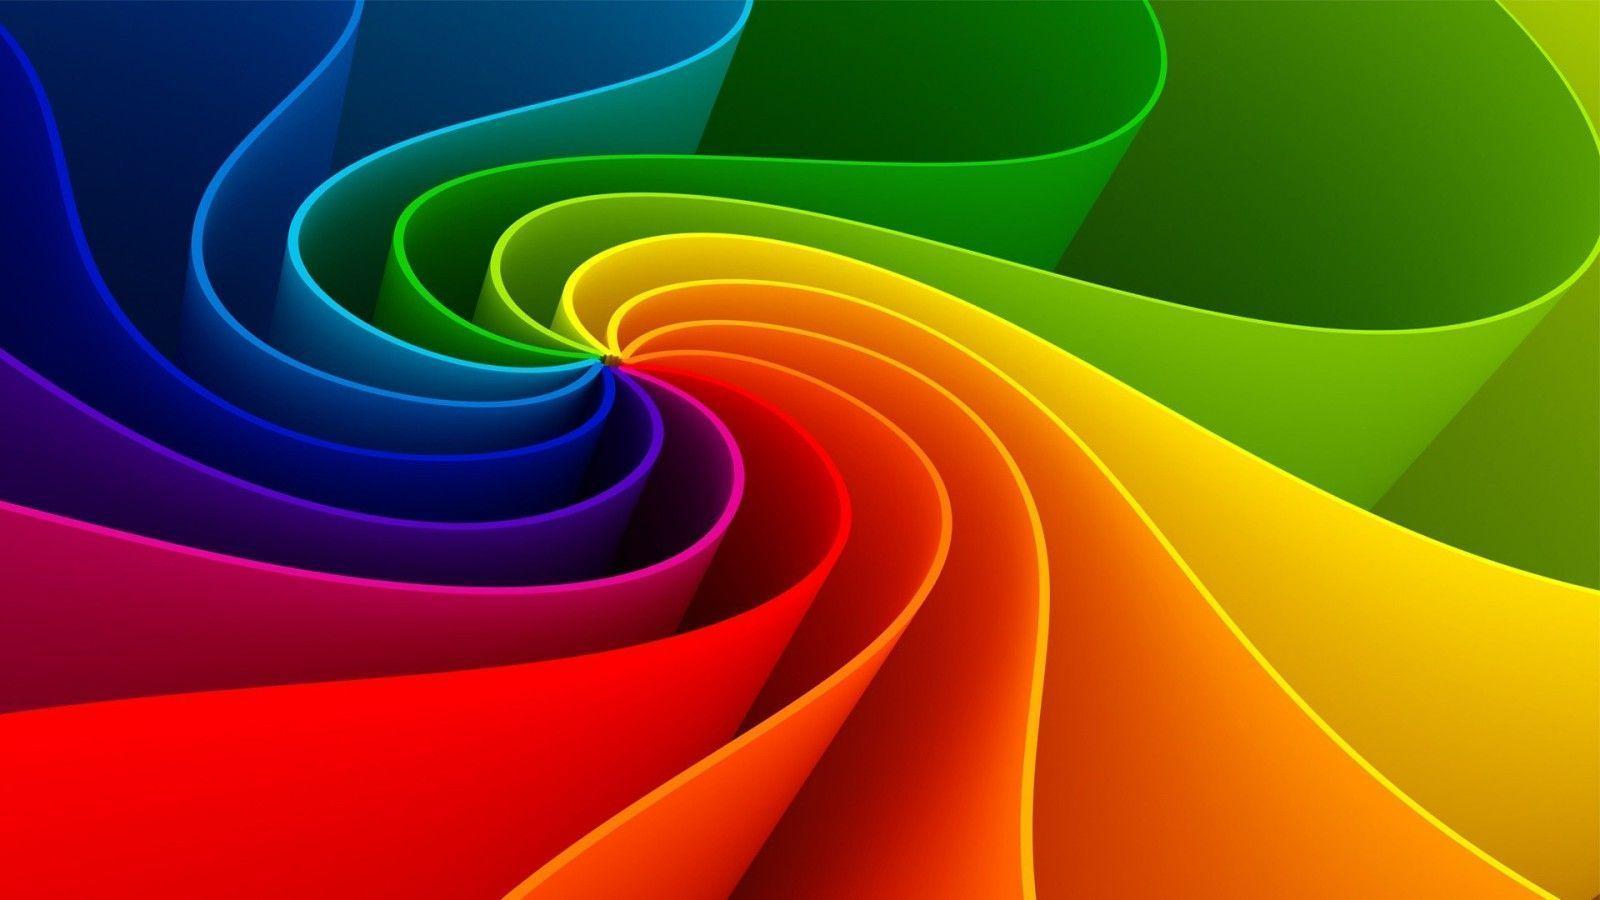 New Wallpaper Color Iphone: Color HD Wallpapers